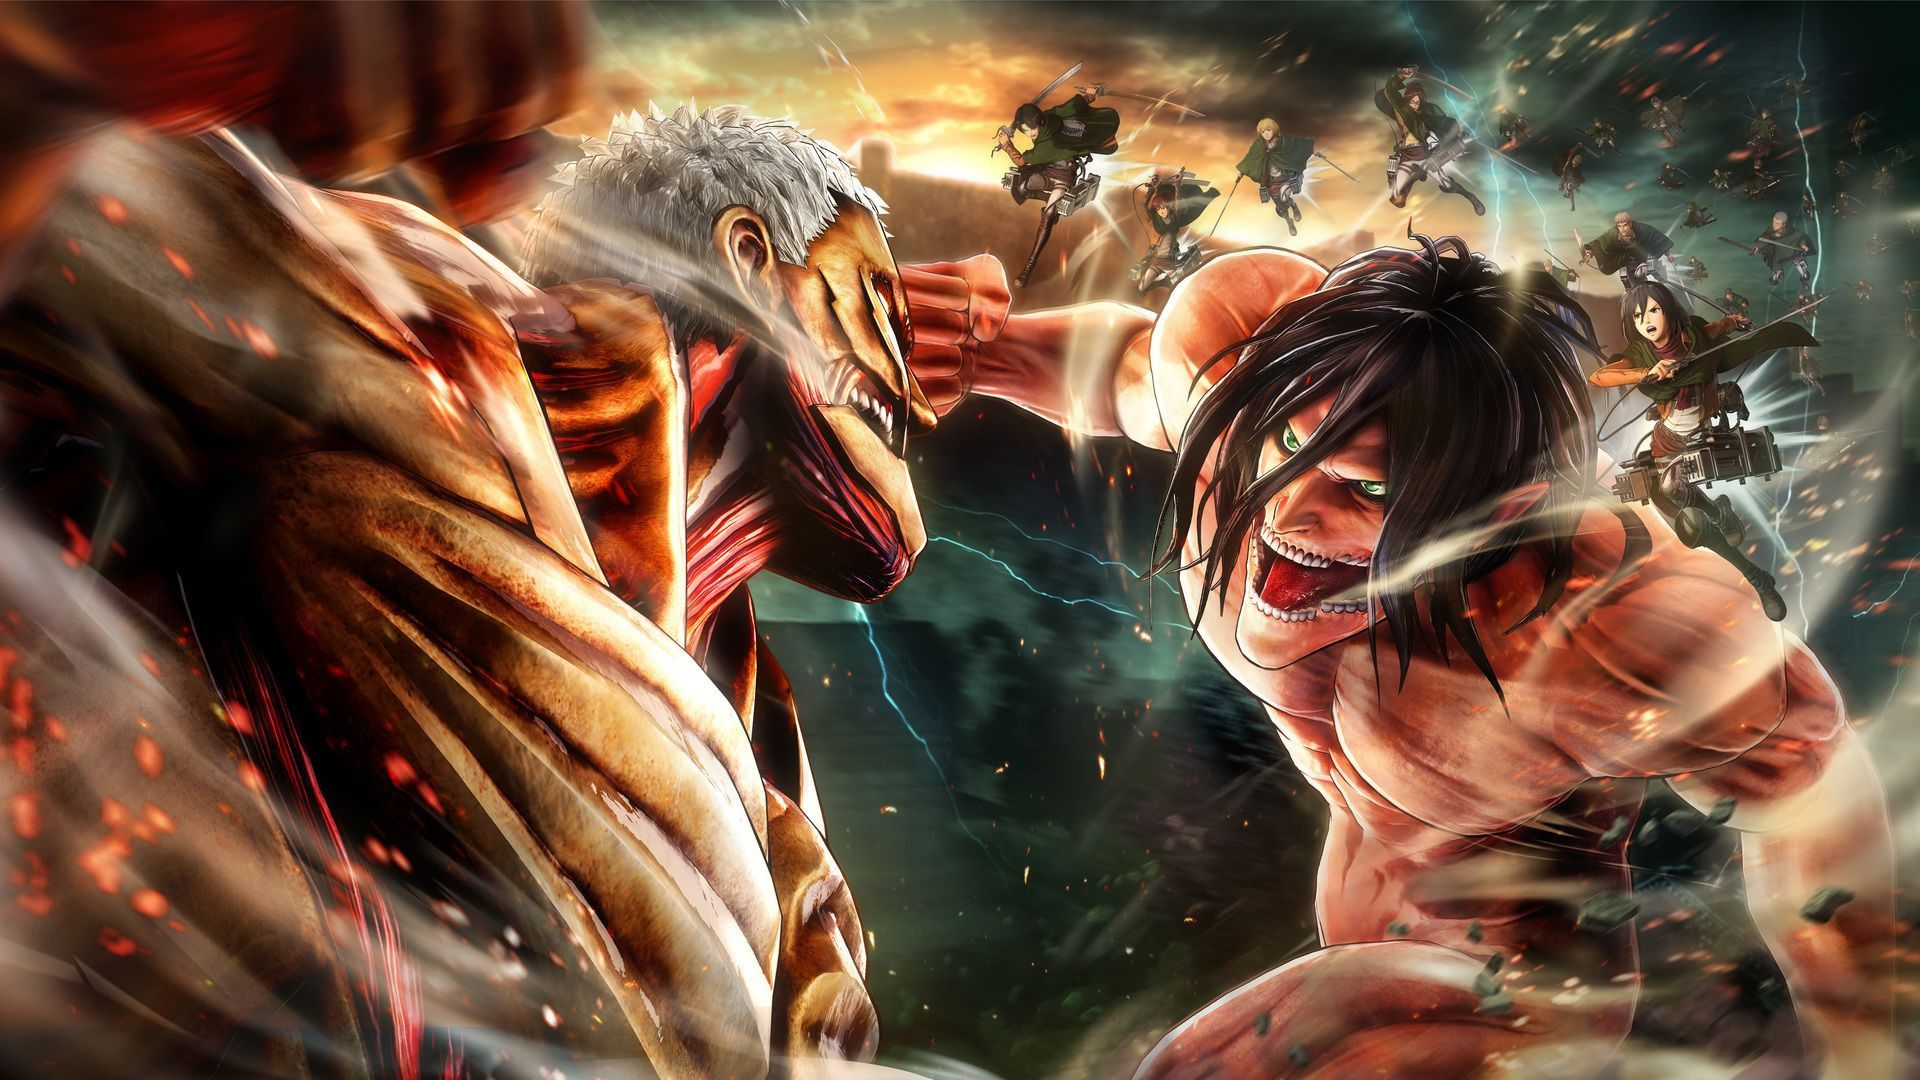 Attack On Titan Wallpaper 4k Desktop Luxury Attack Titan Wallpapers Top Free Attack Titan Of In 2020 Attack On Titan Episodes Attack On Titan Season Attack On Titan 2